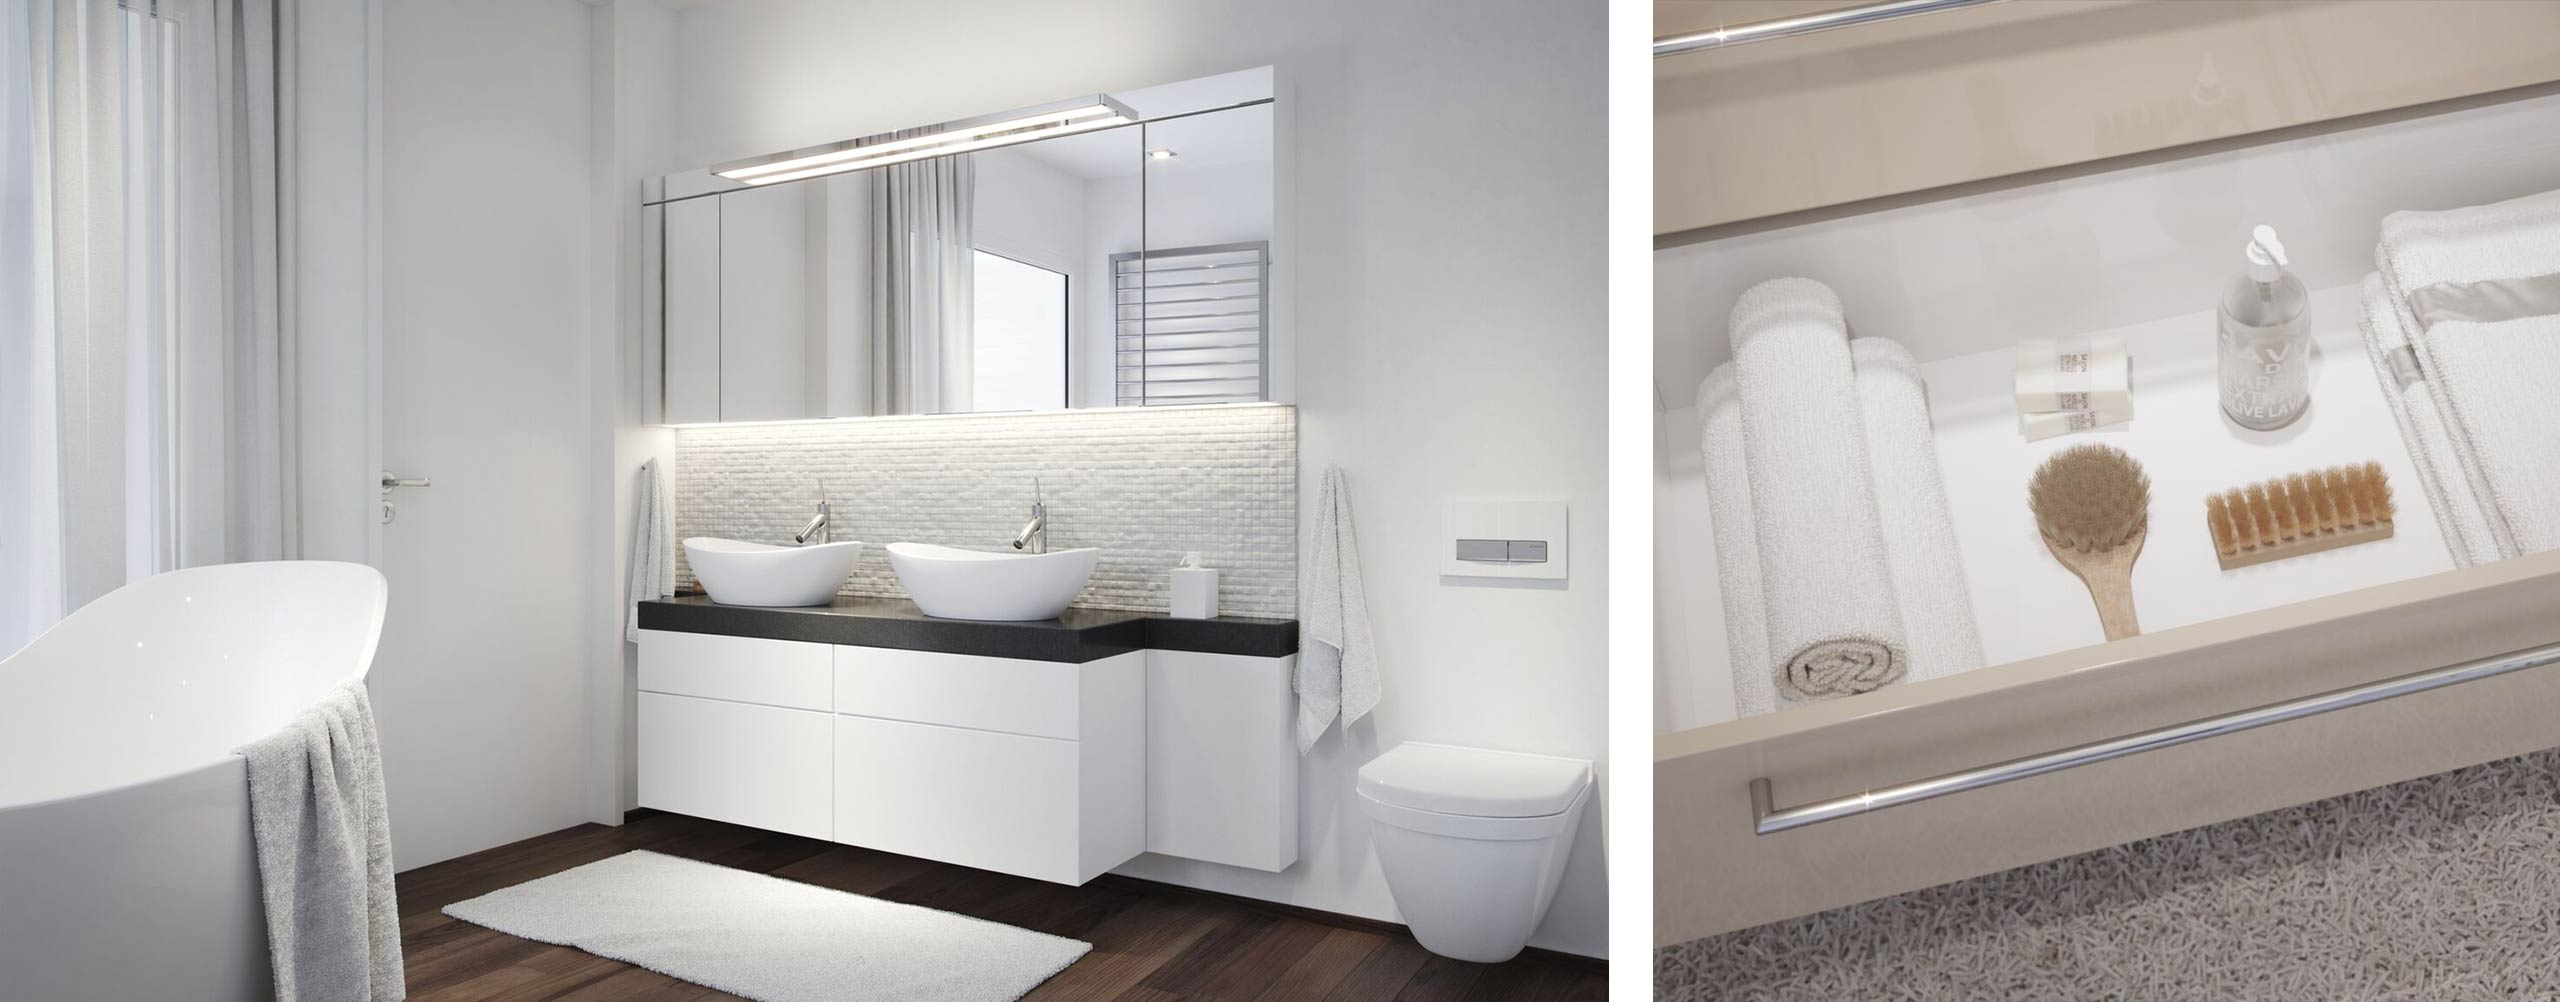 CGI visuals by Design Connected for Talsee bathroom